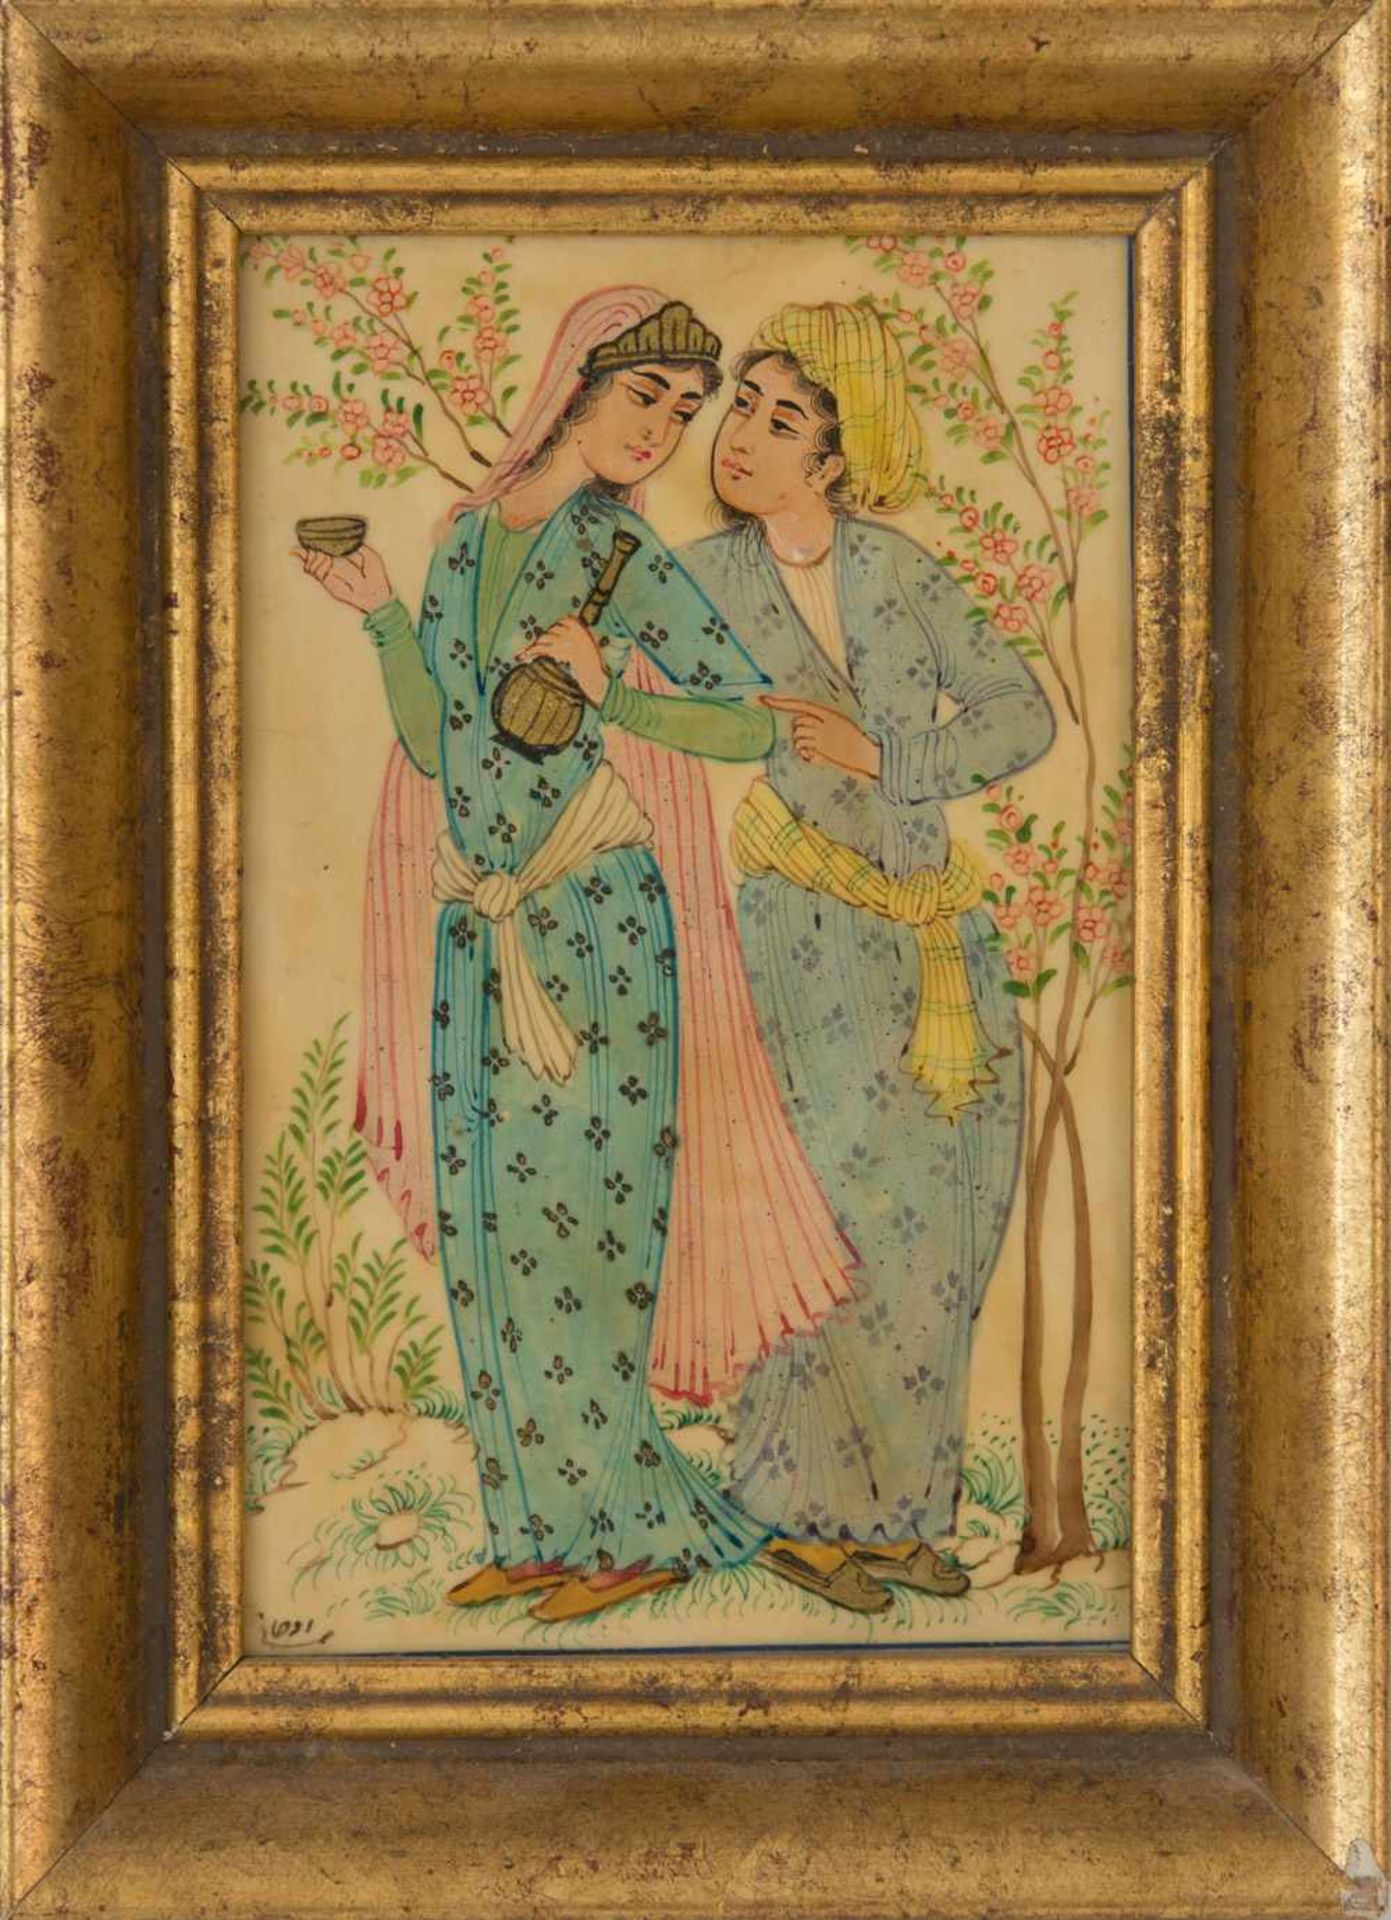 Los 22 - INDIAN MINIATURE PAINTING, polychromatic painted, framed framed, 17 x 12,5 cm.